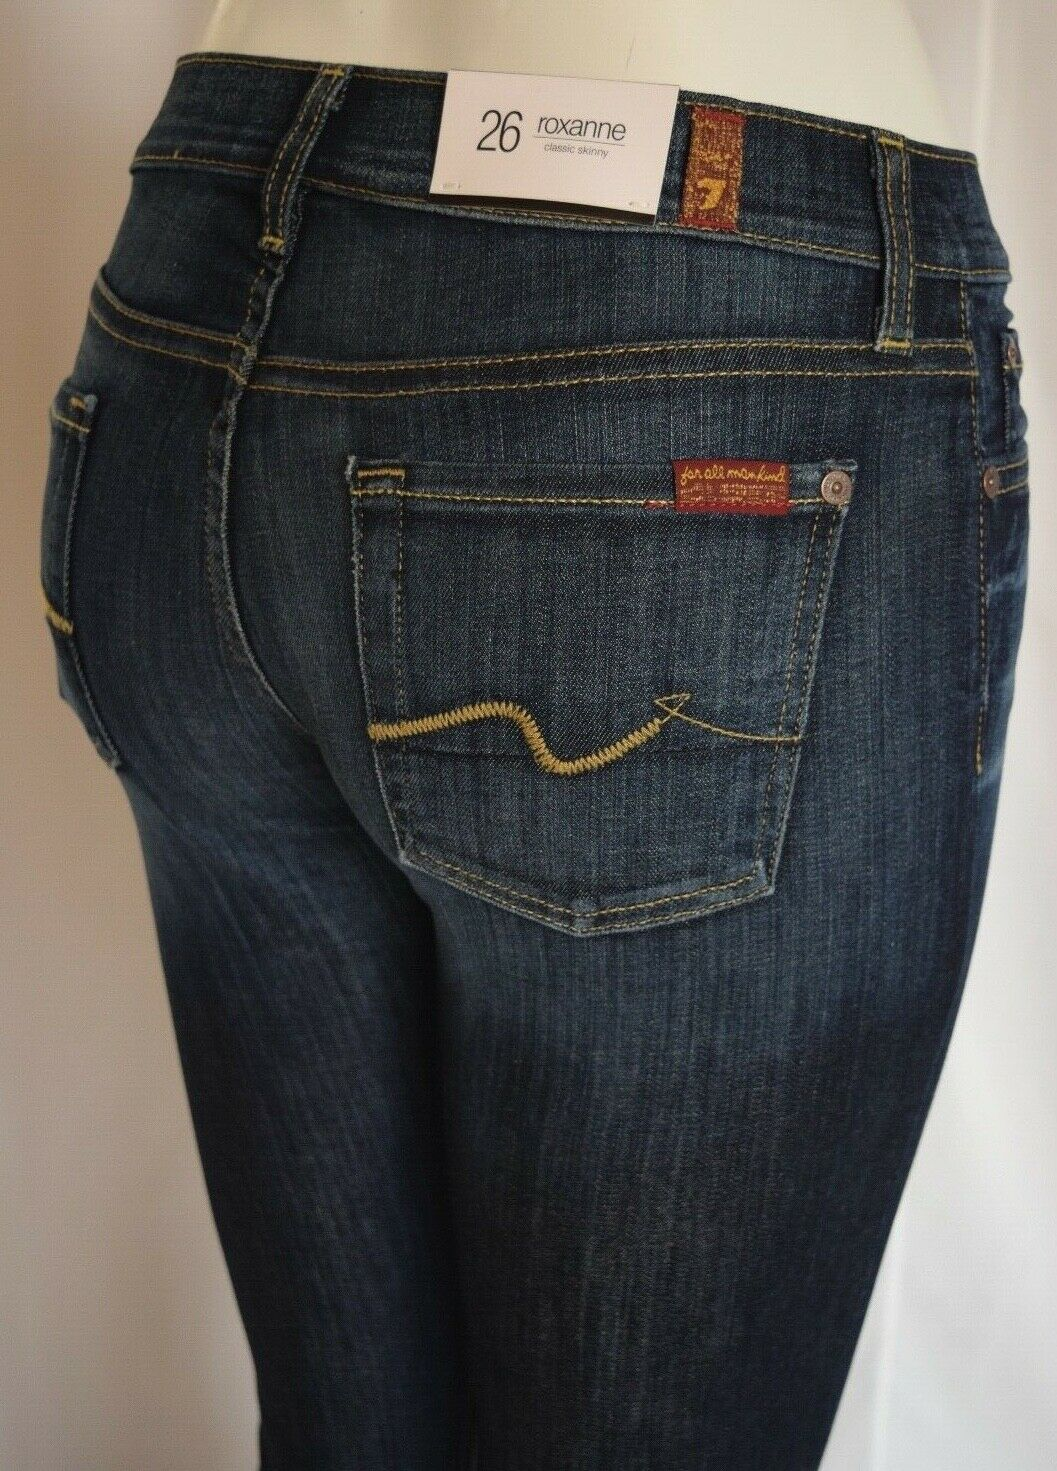 NEW Seven 7 For All Mankind ROXANNE Skinny Jean Woman 26 NOUVEAU NEW YORK DARK